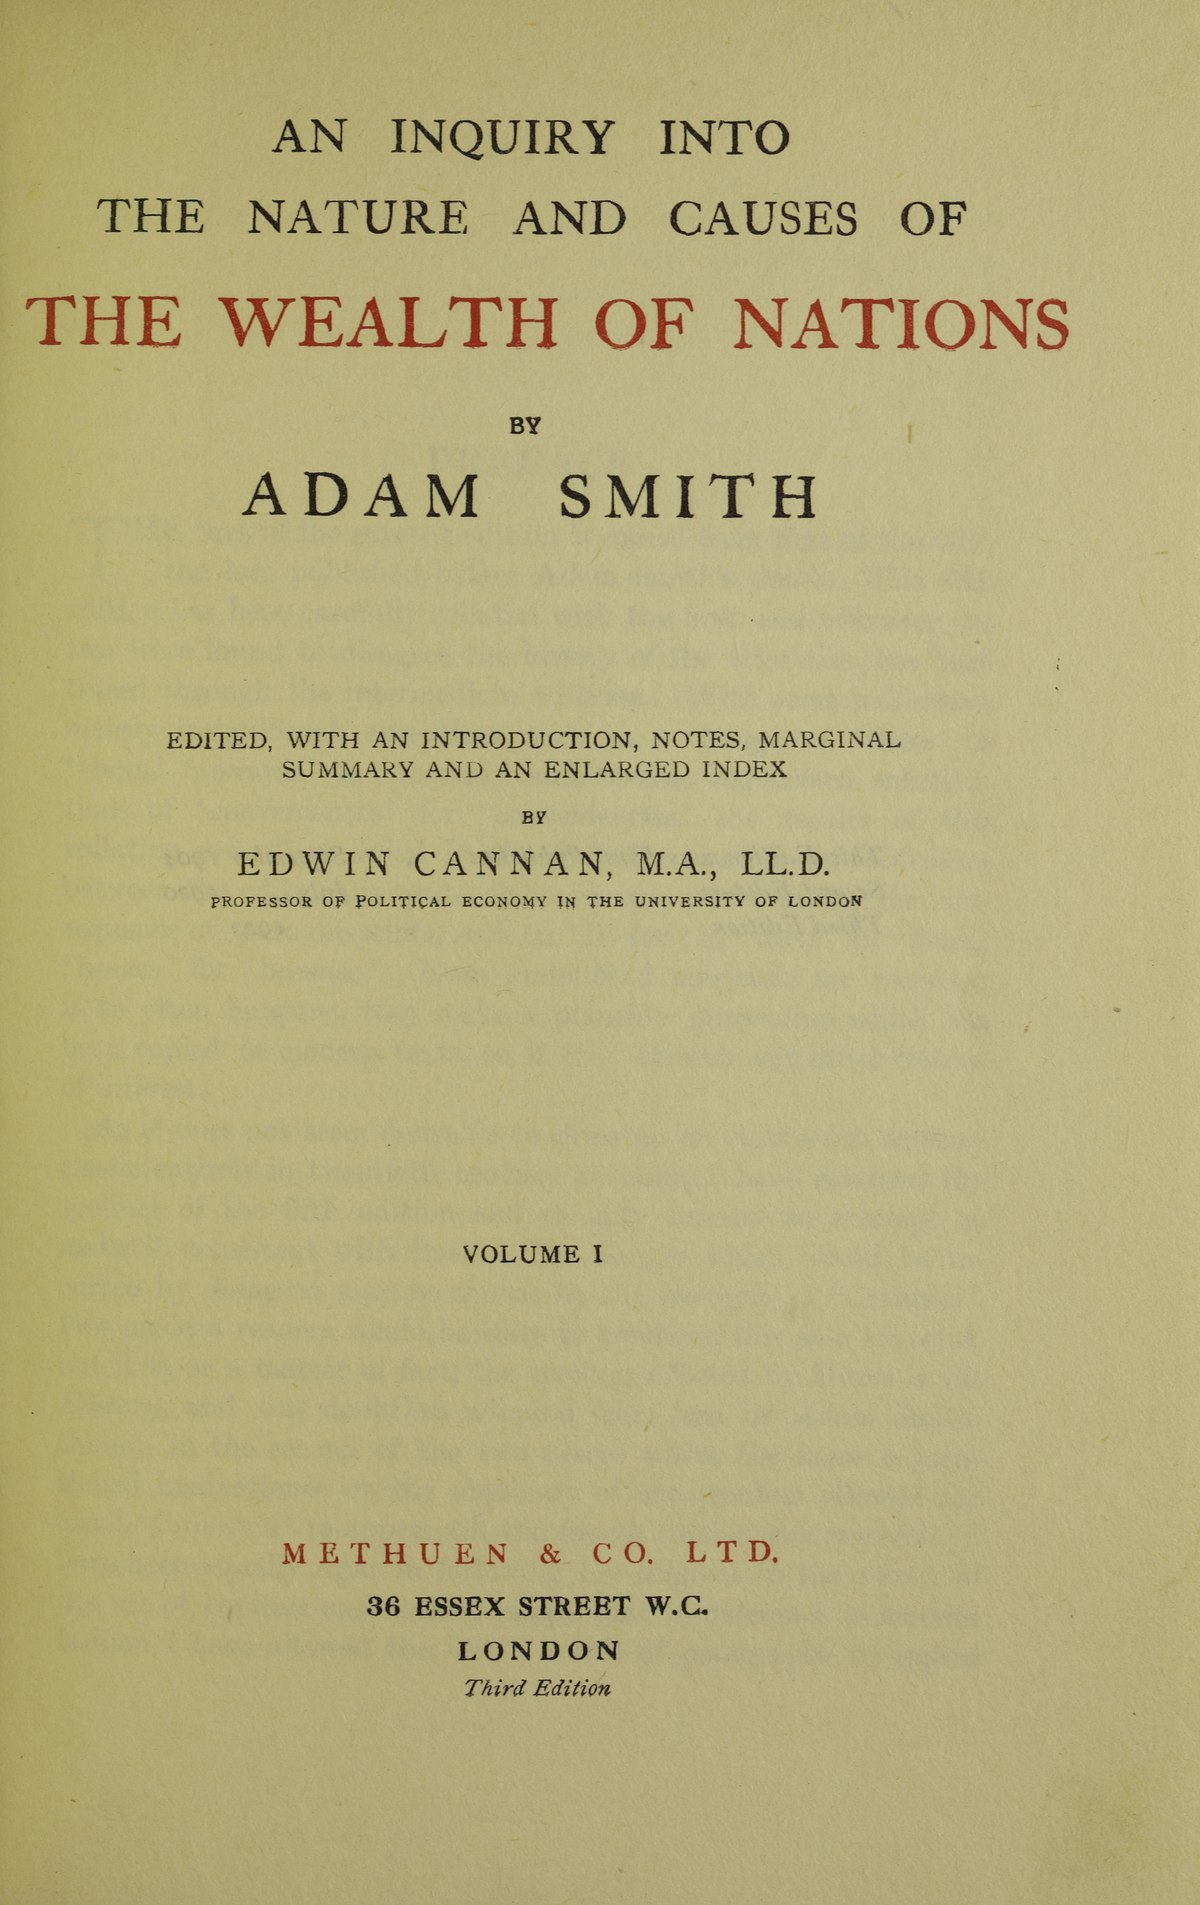 essays on adam smith wealth of nations Free essay: tommy jones begged, pleaded, and hoped beyond hope for that new touch screen phone that would immediately move him up the social ranks at his.